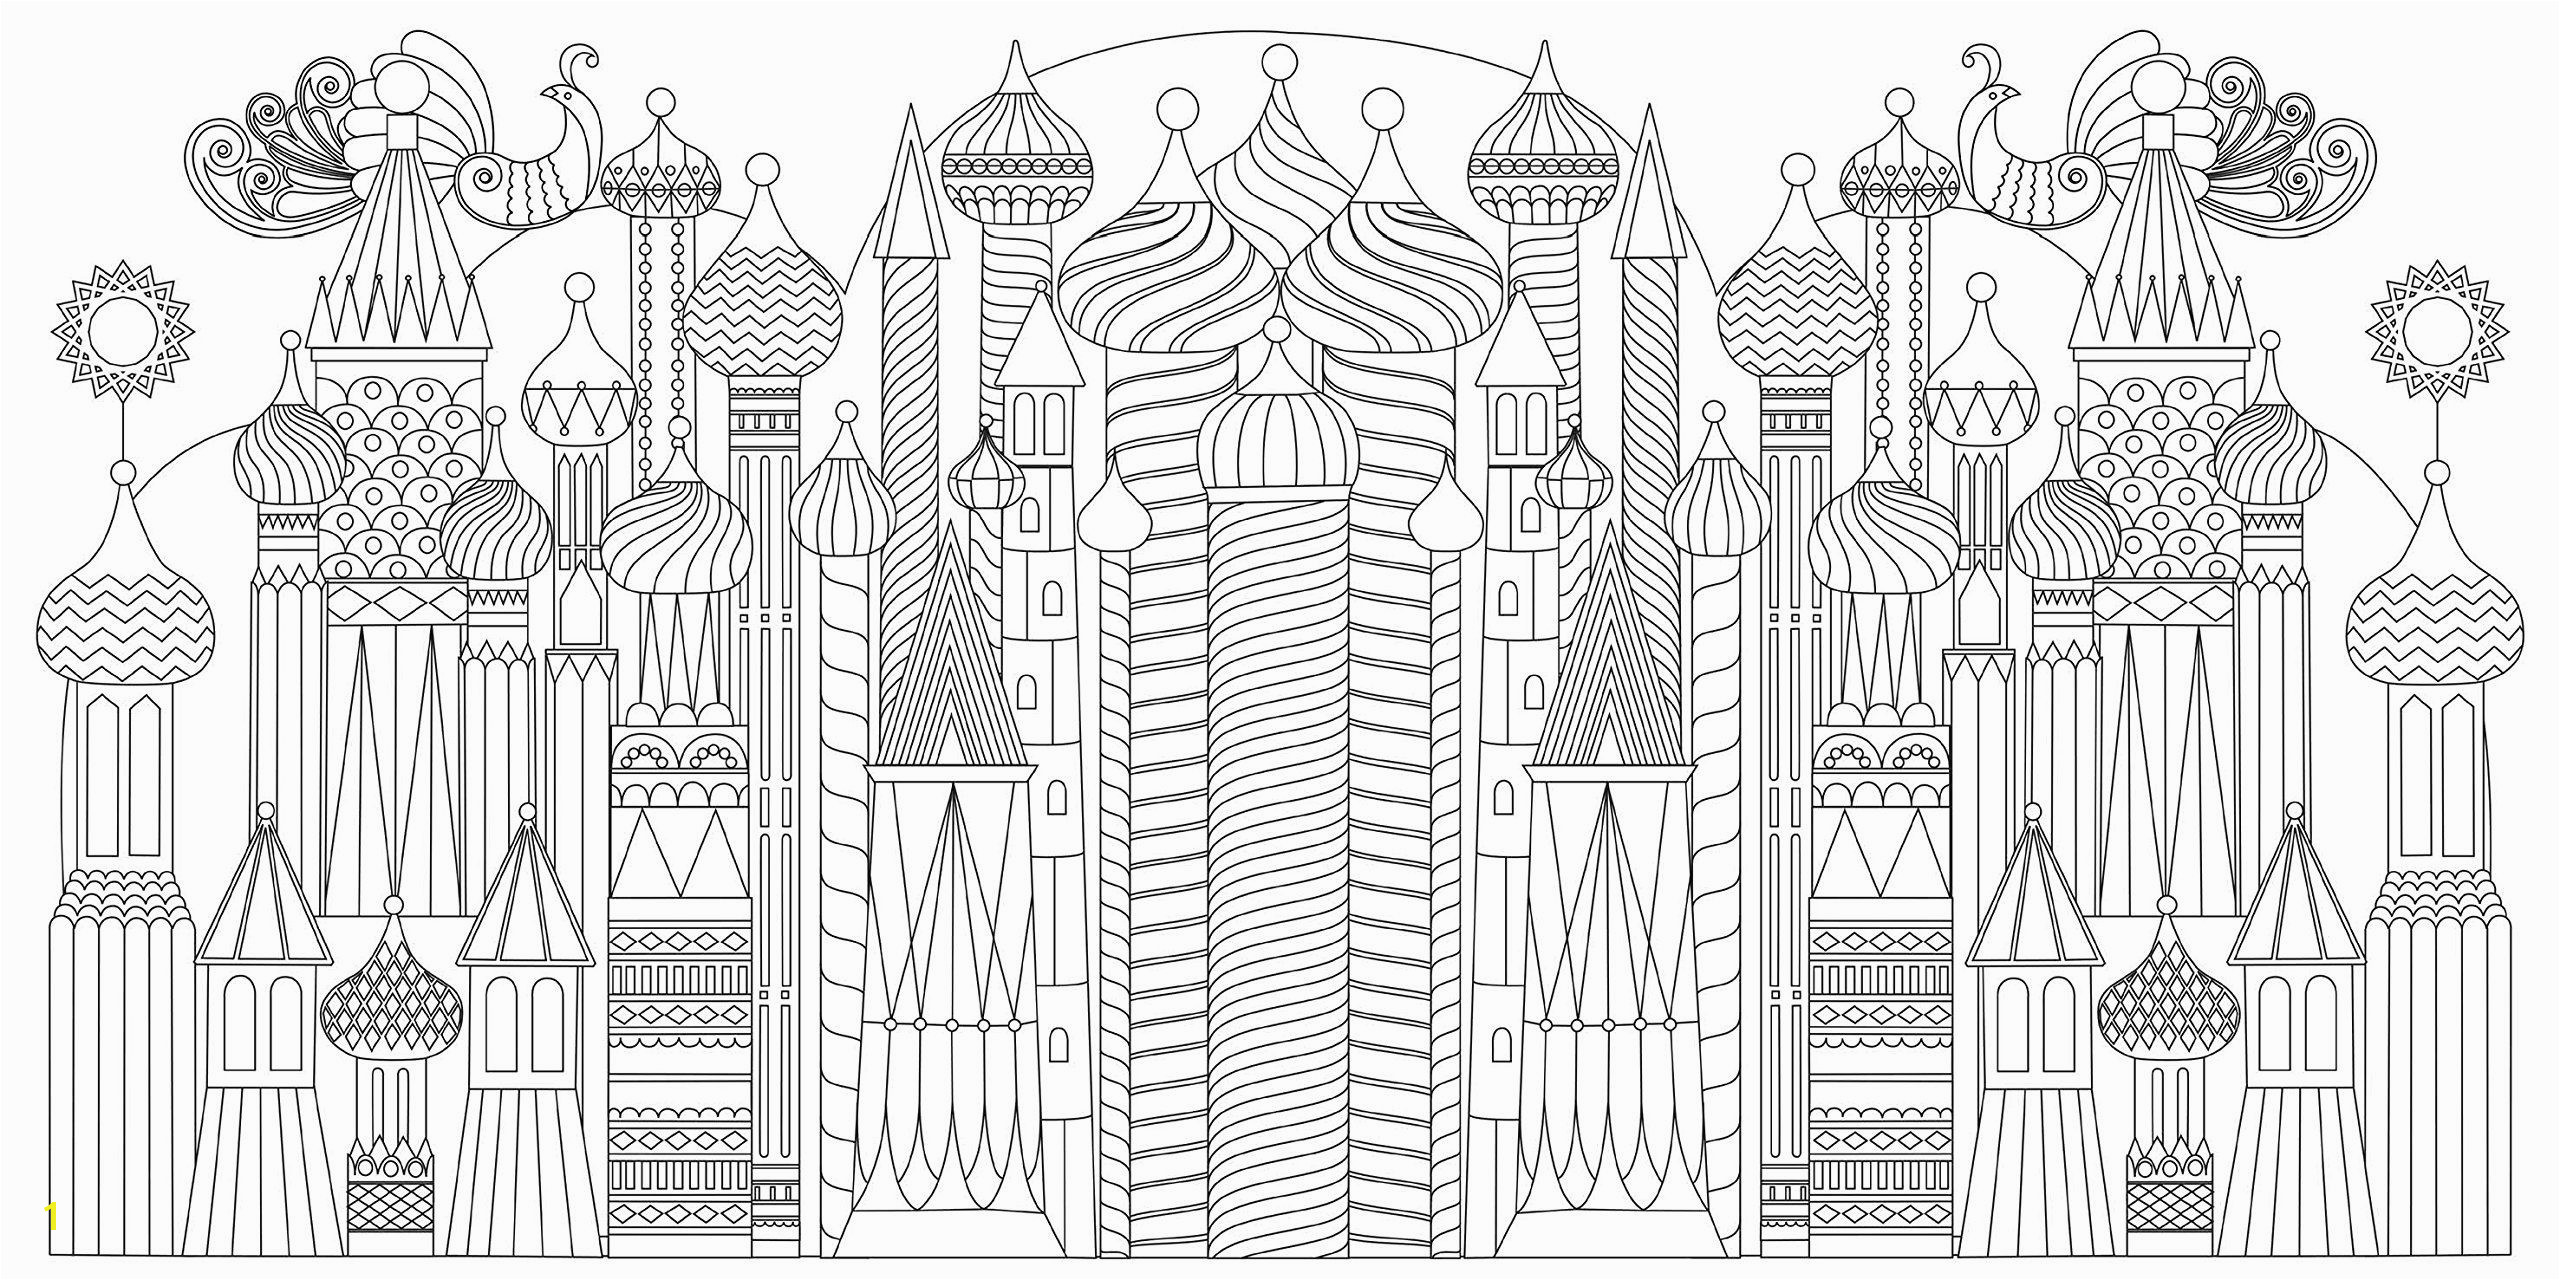 City Coloring Pages for Adults Splendid Cities Color Your Way to Calm Rosie Goodwin Alice